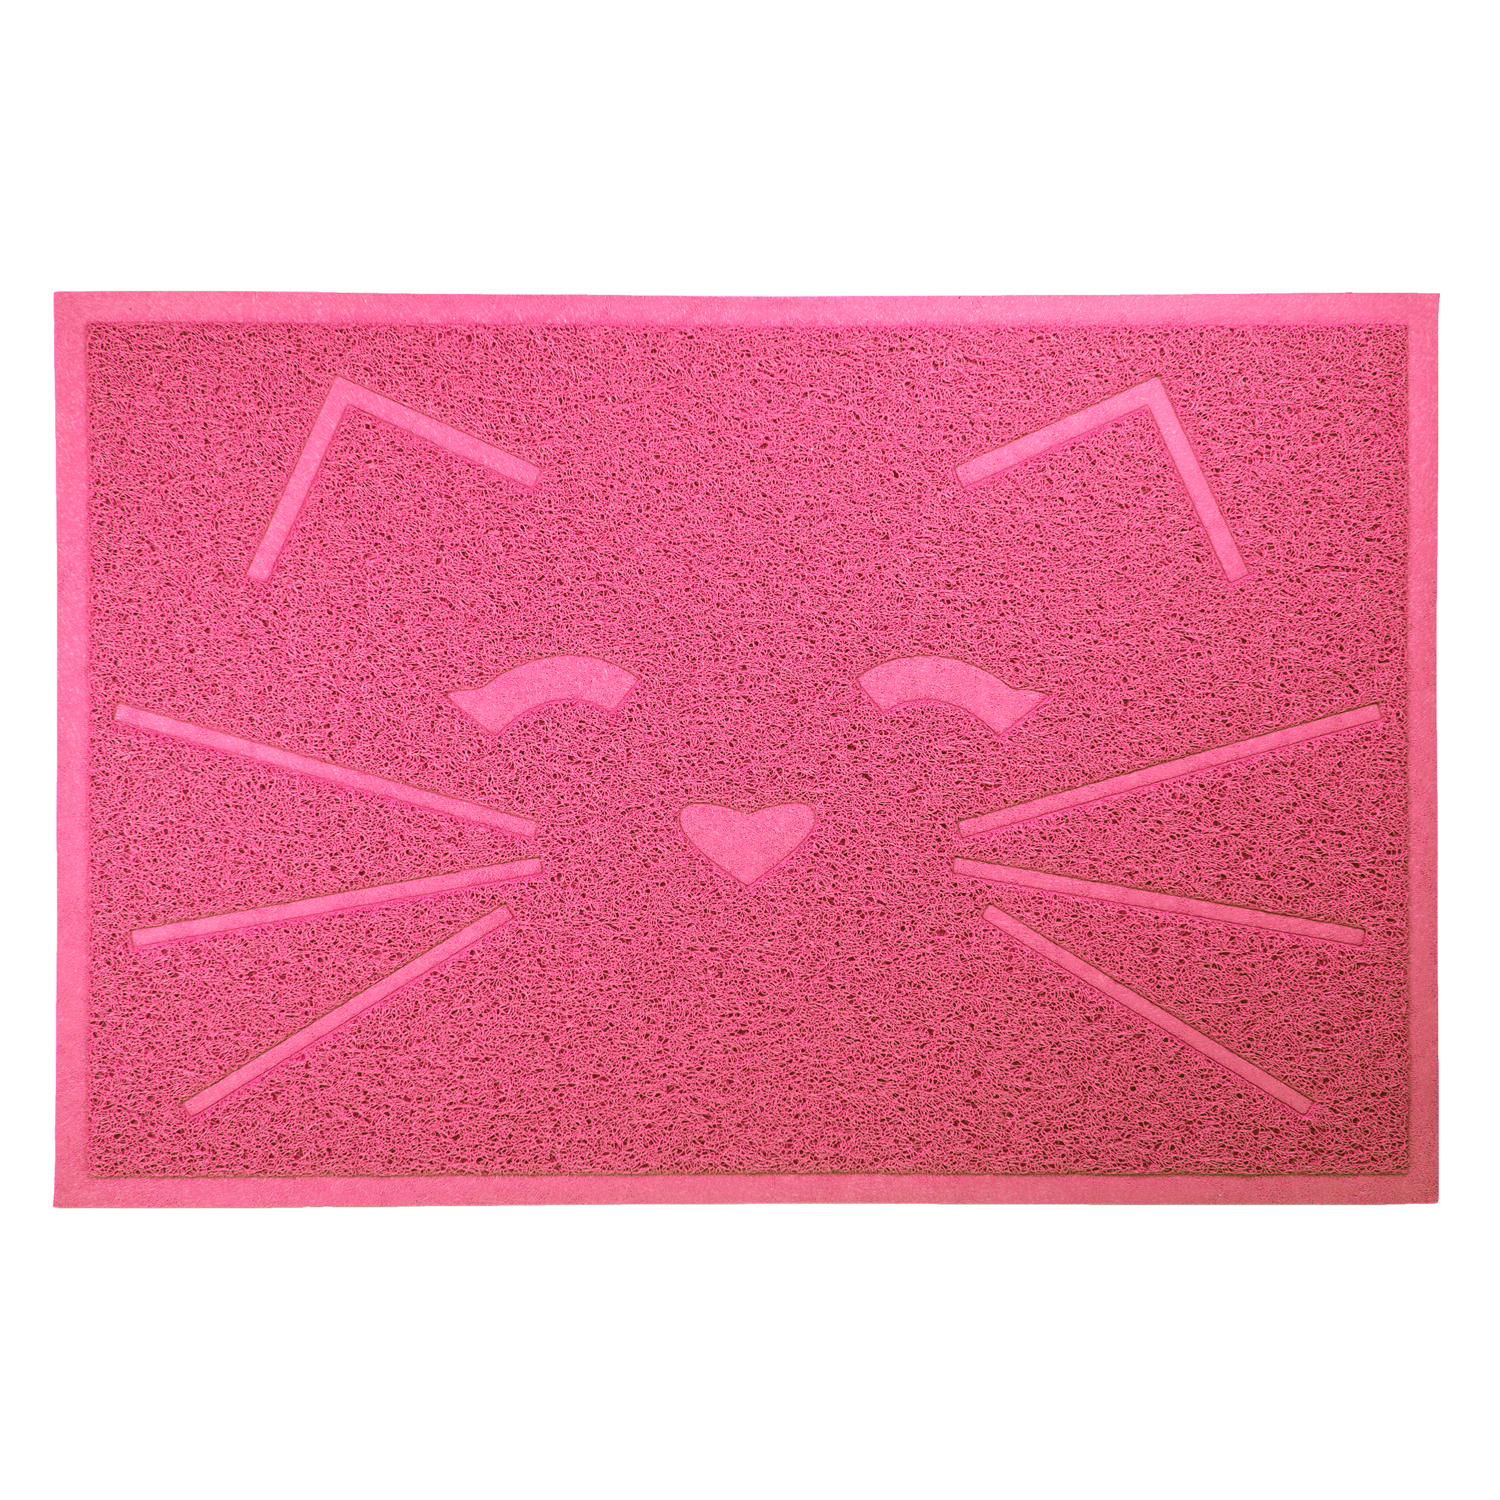 Tiger Tough Cat Litter & Food Mat in Pink